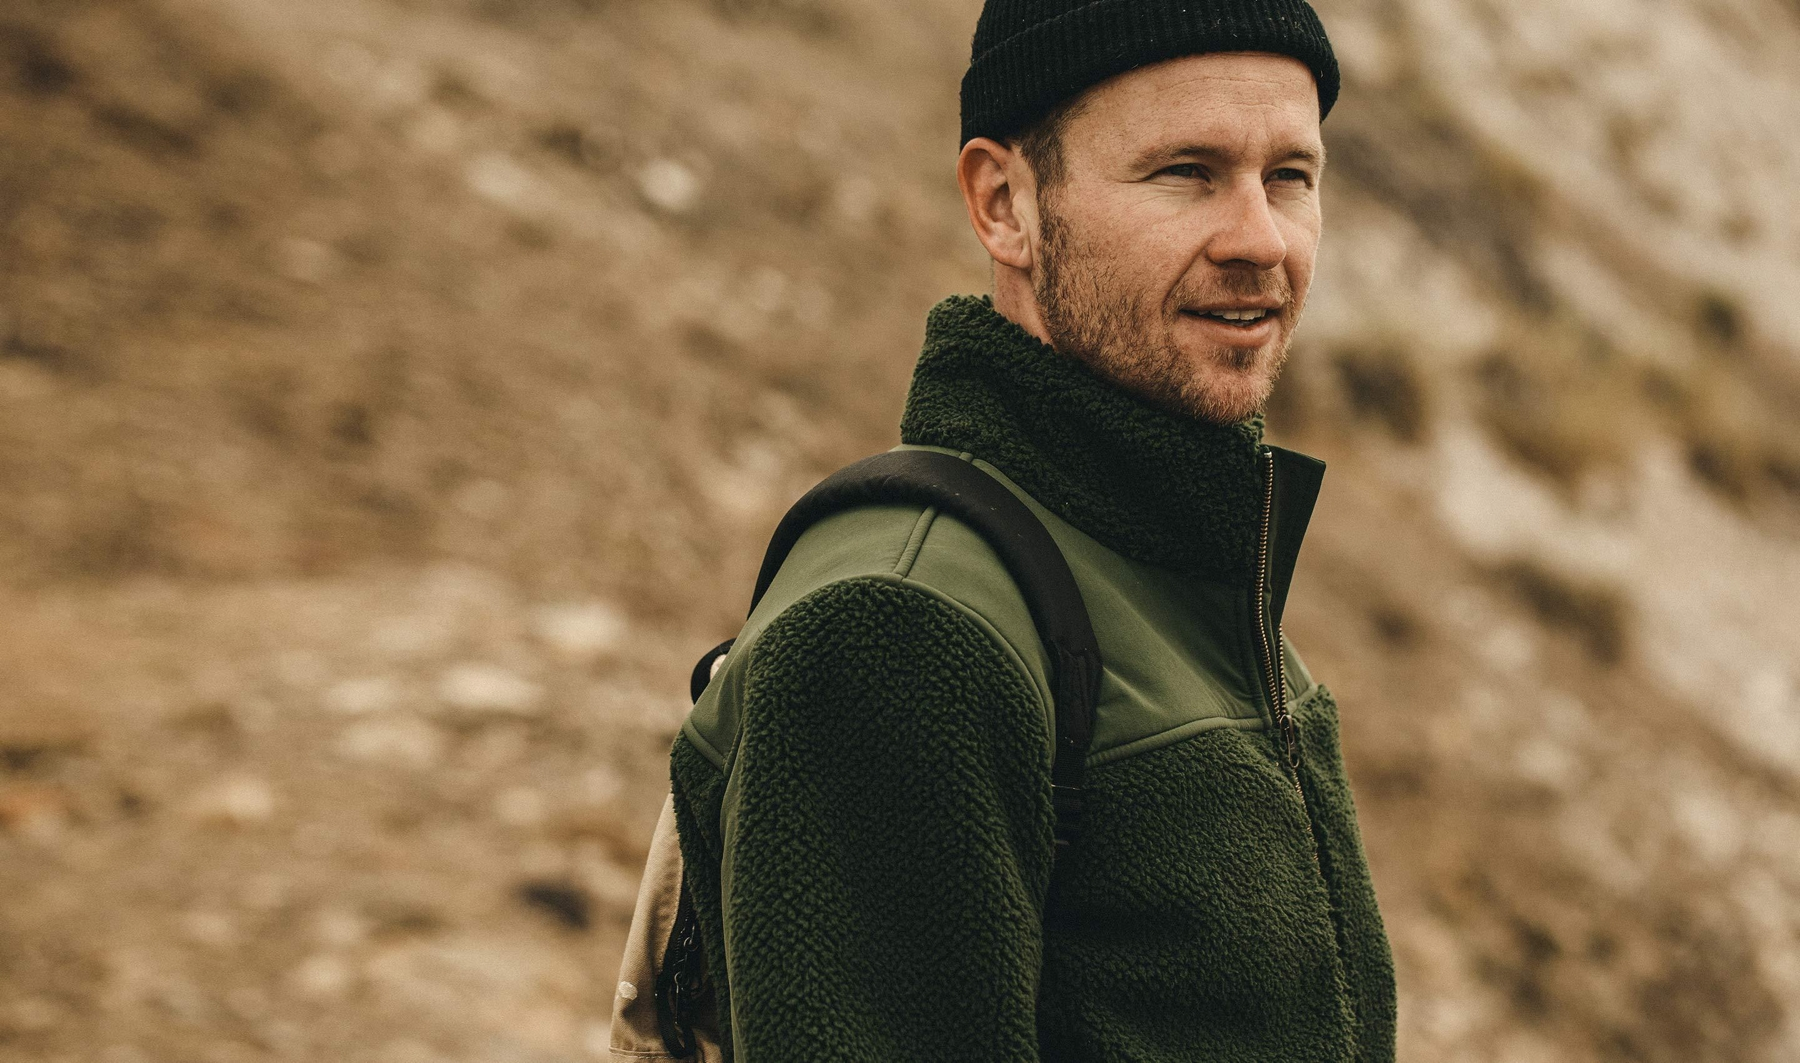 Olive drab surplus style menswear outfit inspiration